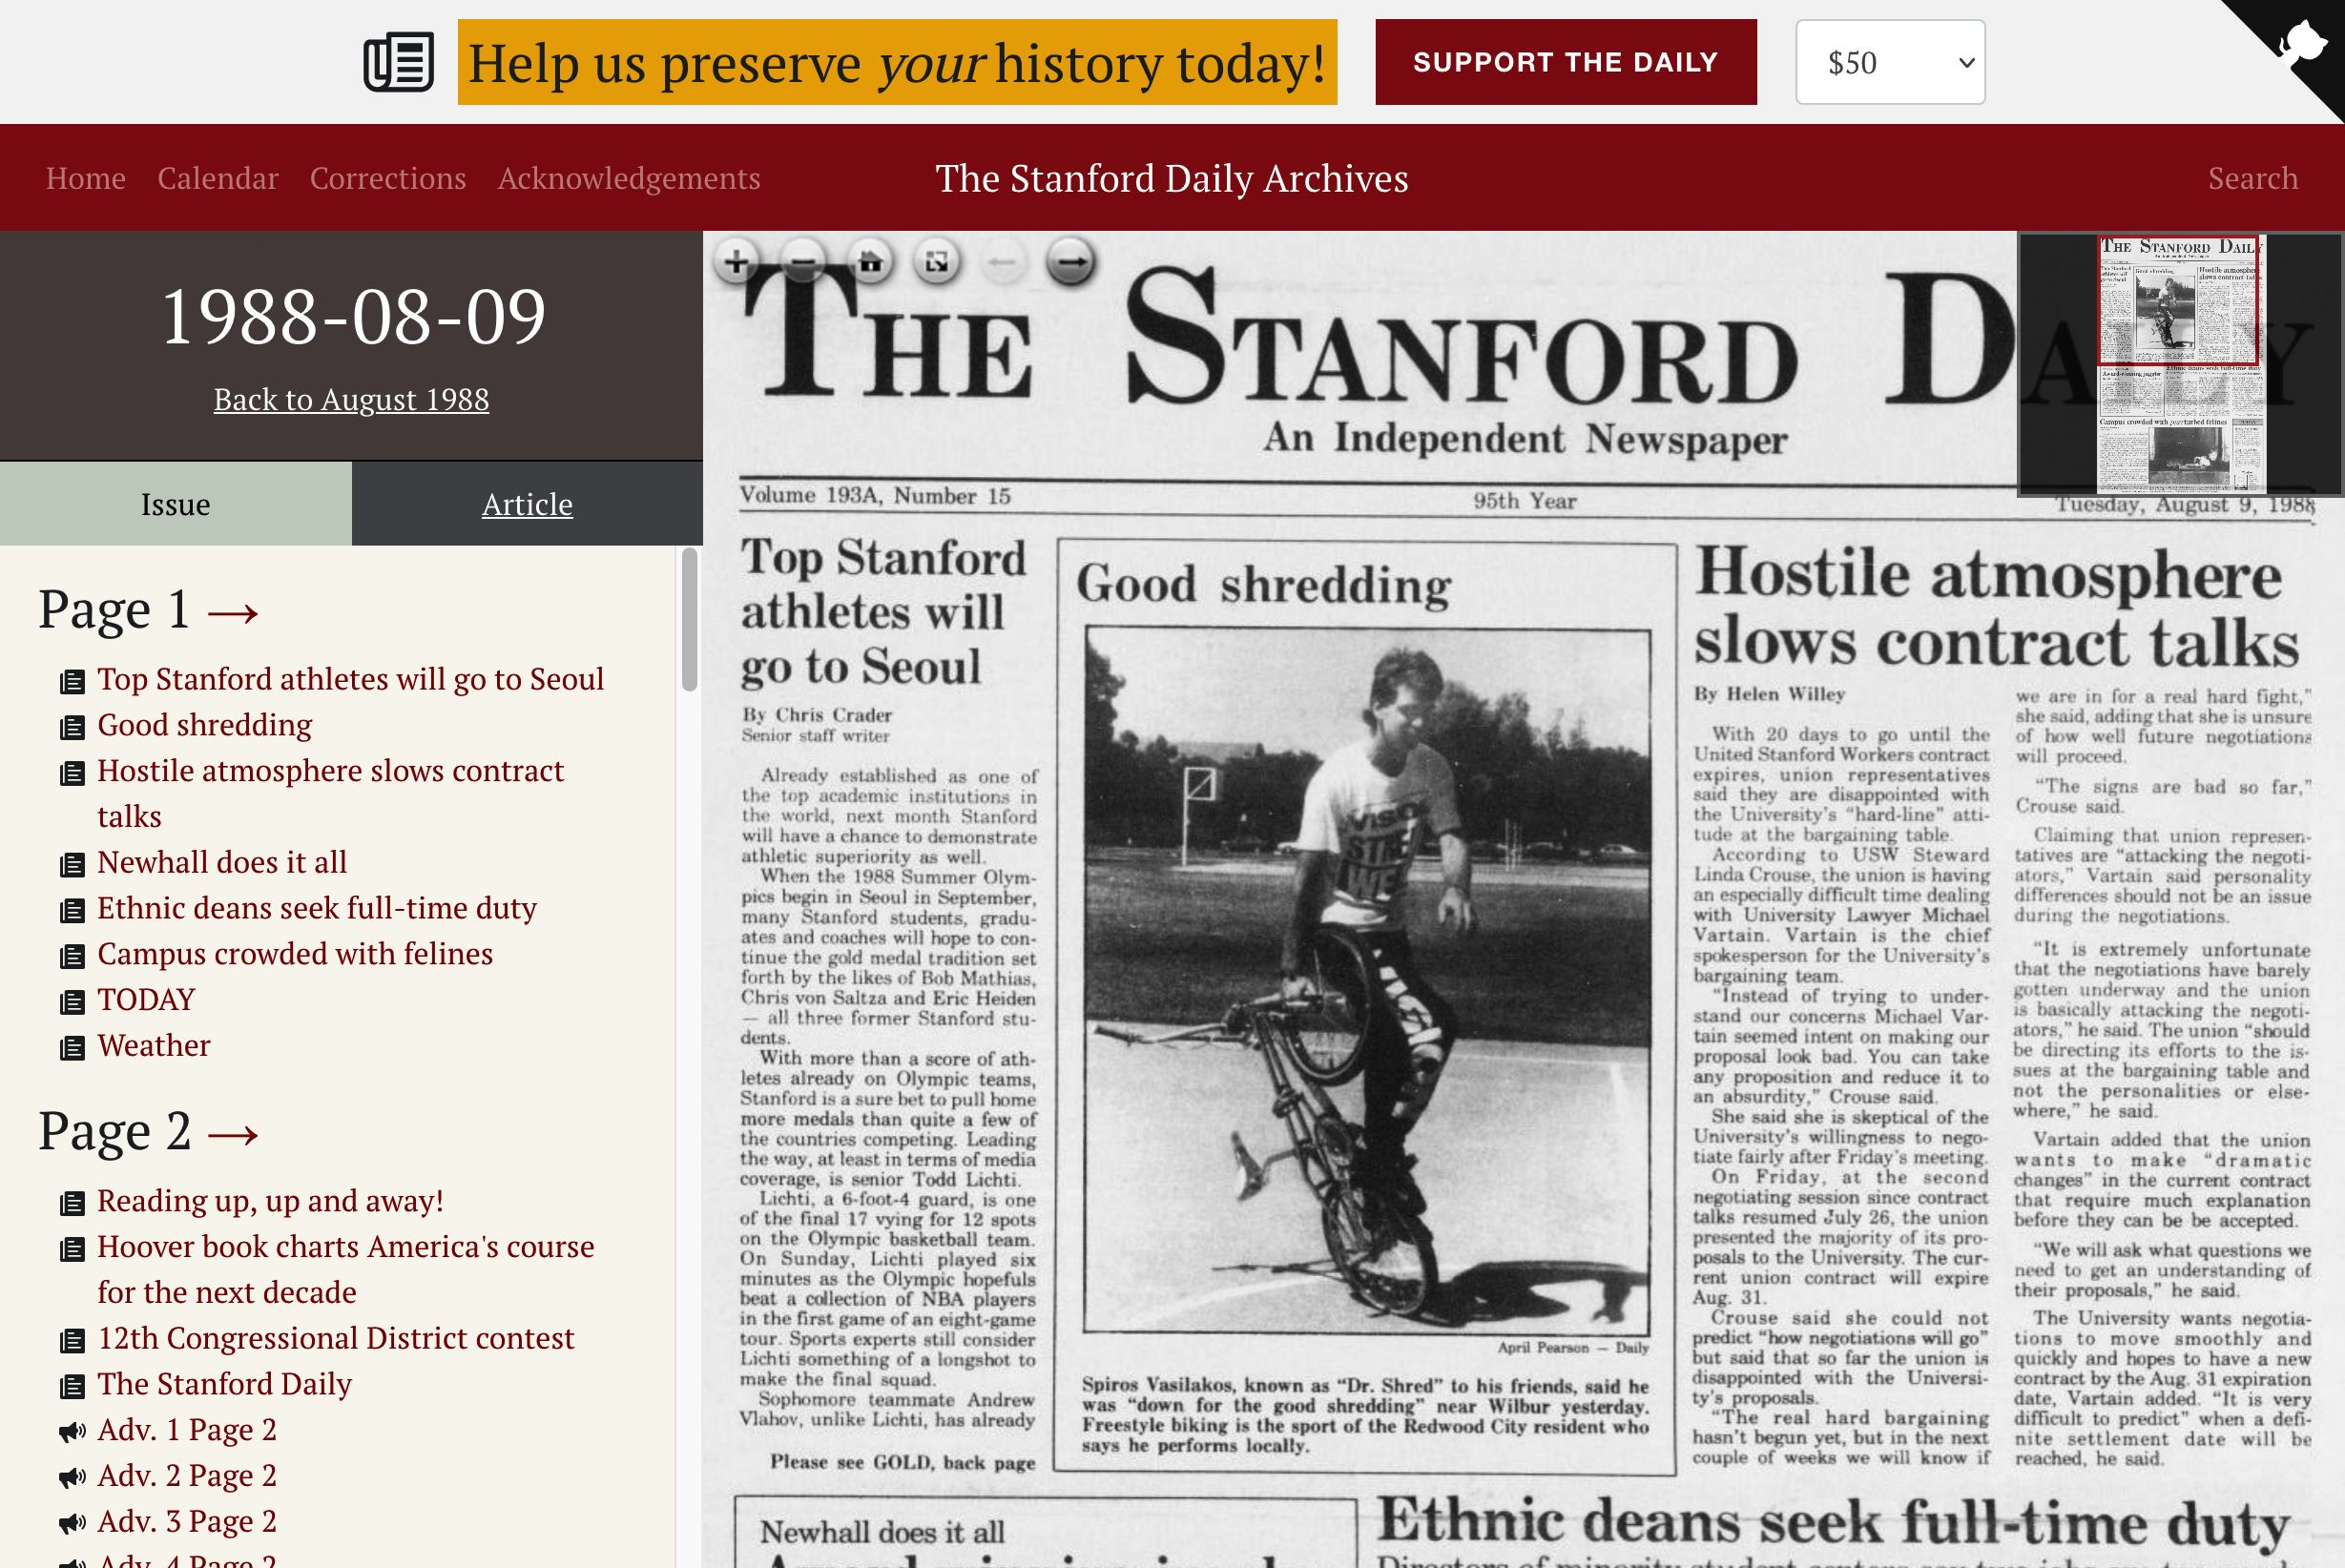 The Stanford Daily Archives